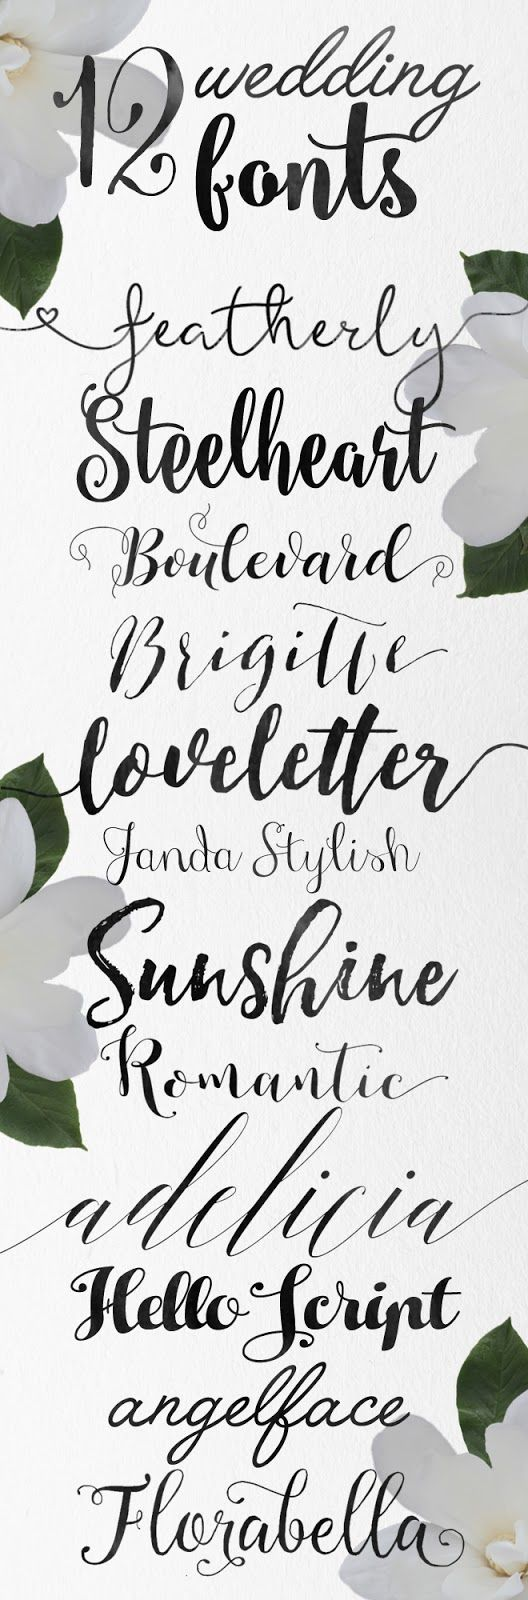 Wedding fonts fonts and calligraphy on pinterest Calligraphy text